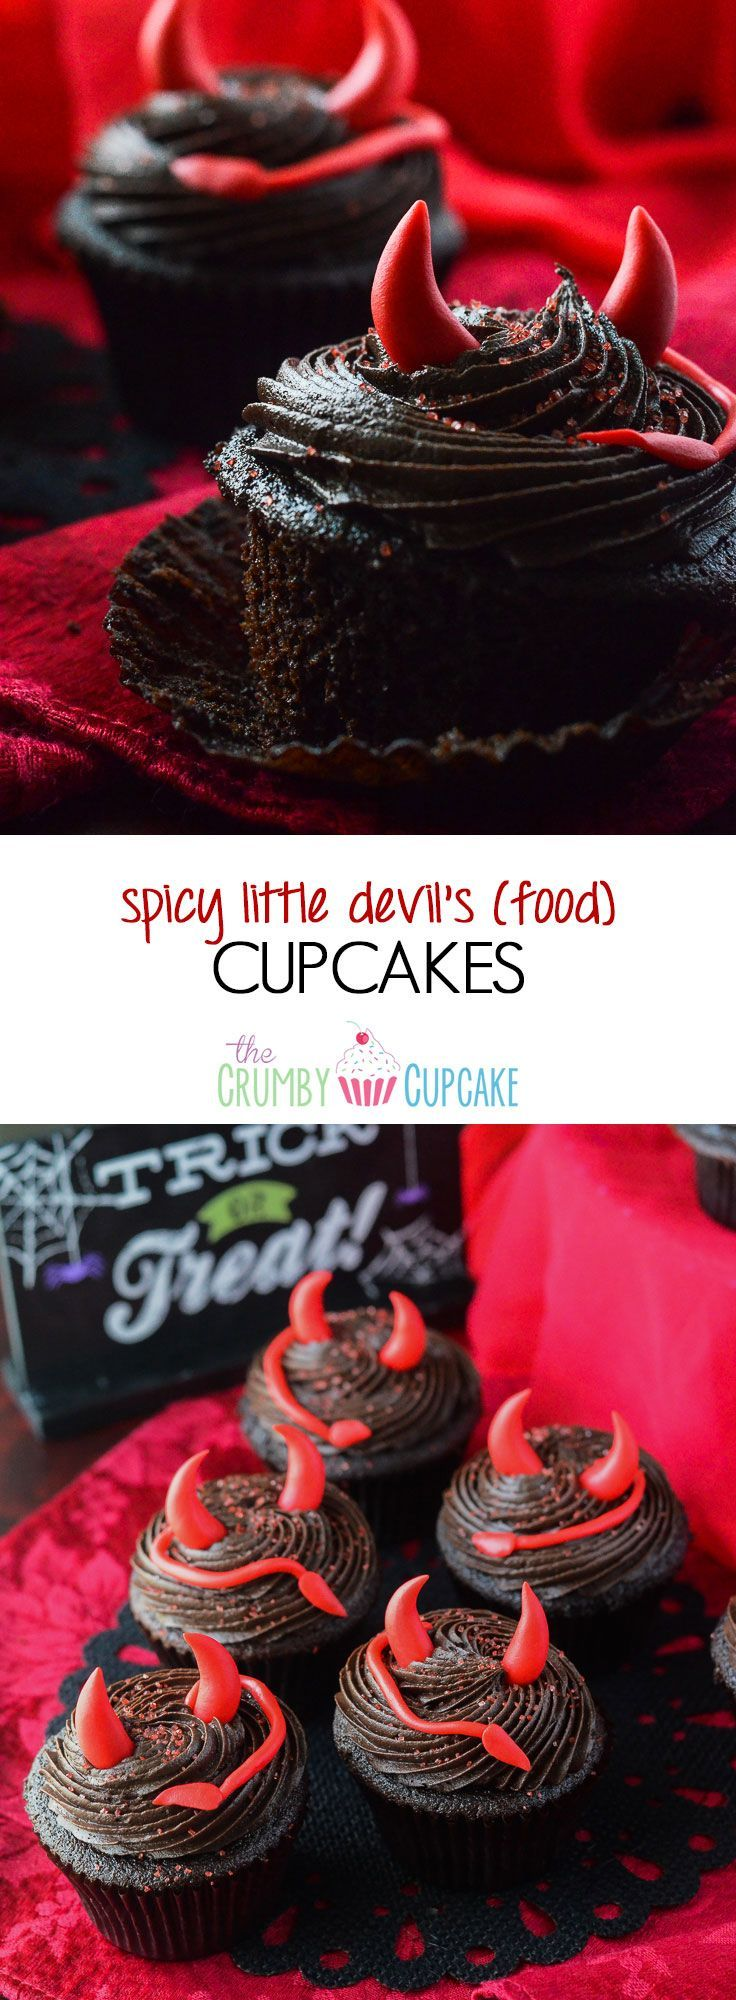 Spicy Little Devil's (Food) Cupcakes | These are no ordinary chocolate cupcakes! They turn up the heat with cinnamon & cayenne, and are topped with devilish decor perfect for any Halloween party! #SundaySupper